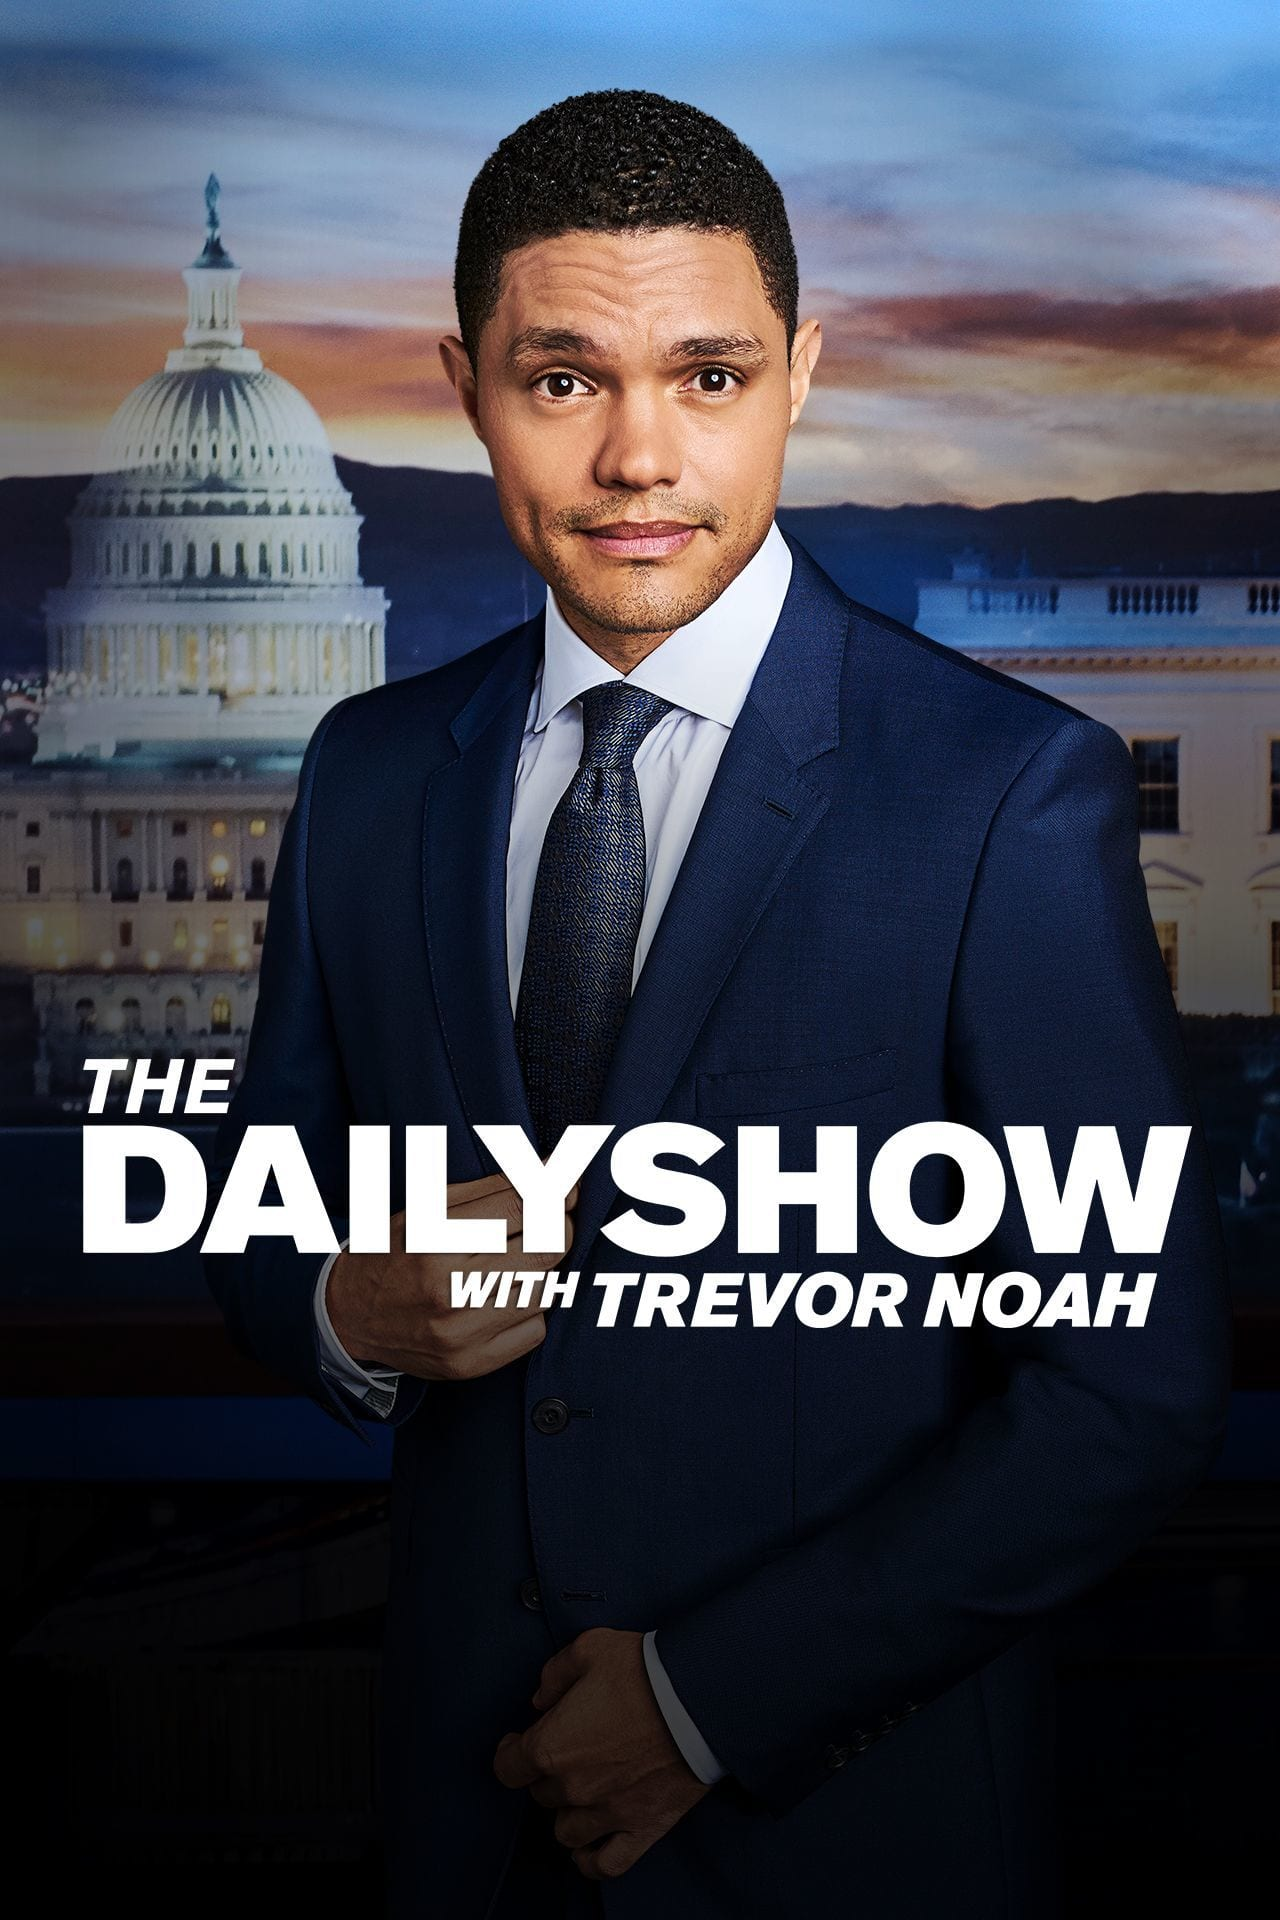 The Daily Show with Trevor Noah teaser image